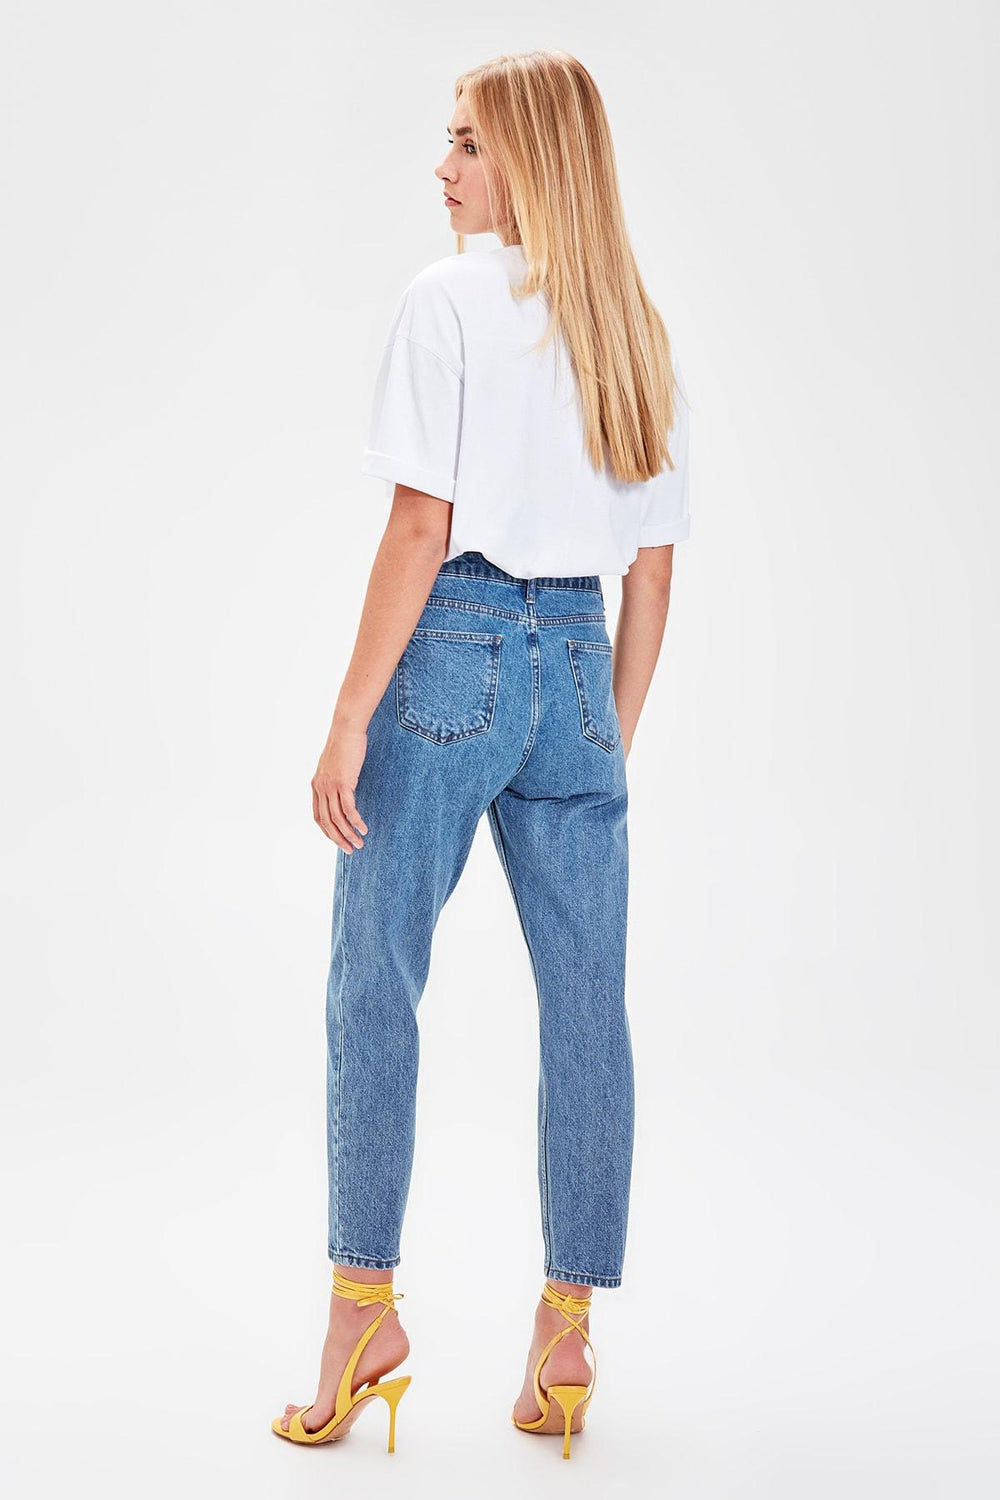 Blue High Waist Mom Jeans - Top Maxy